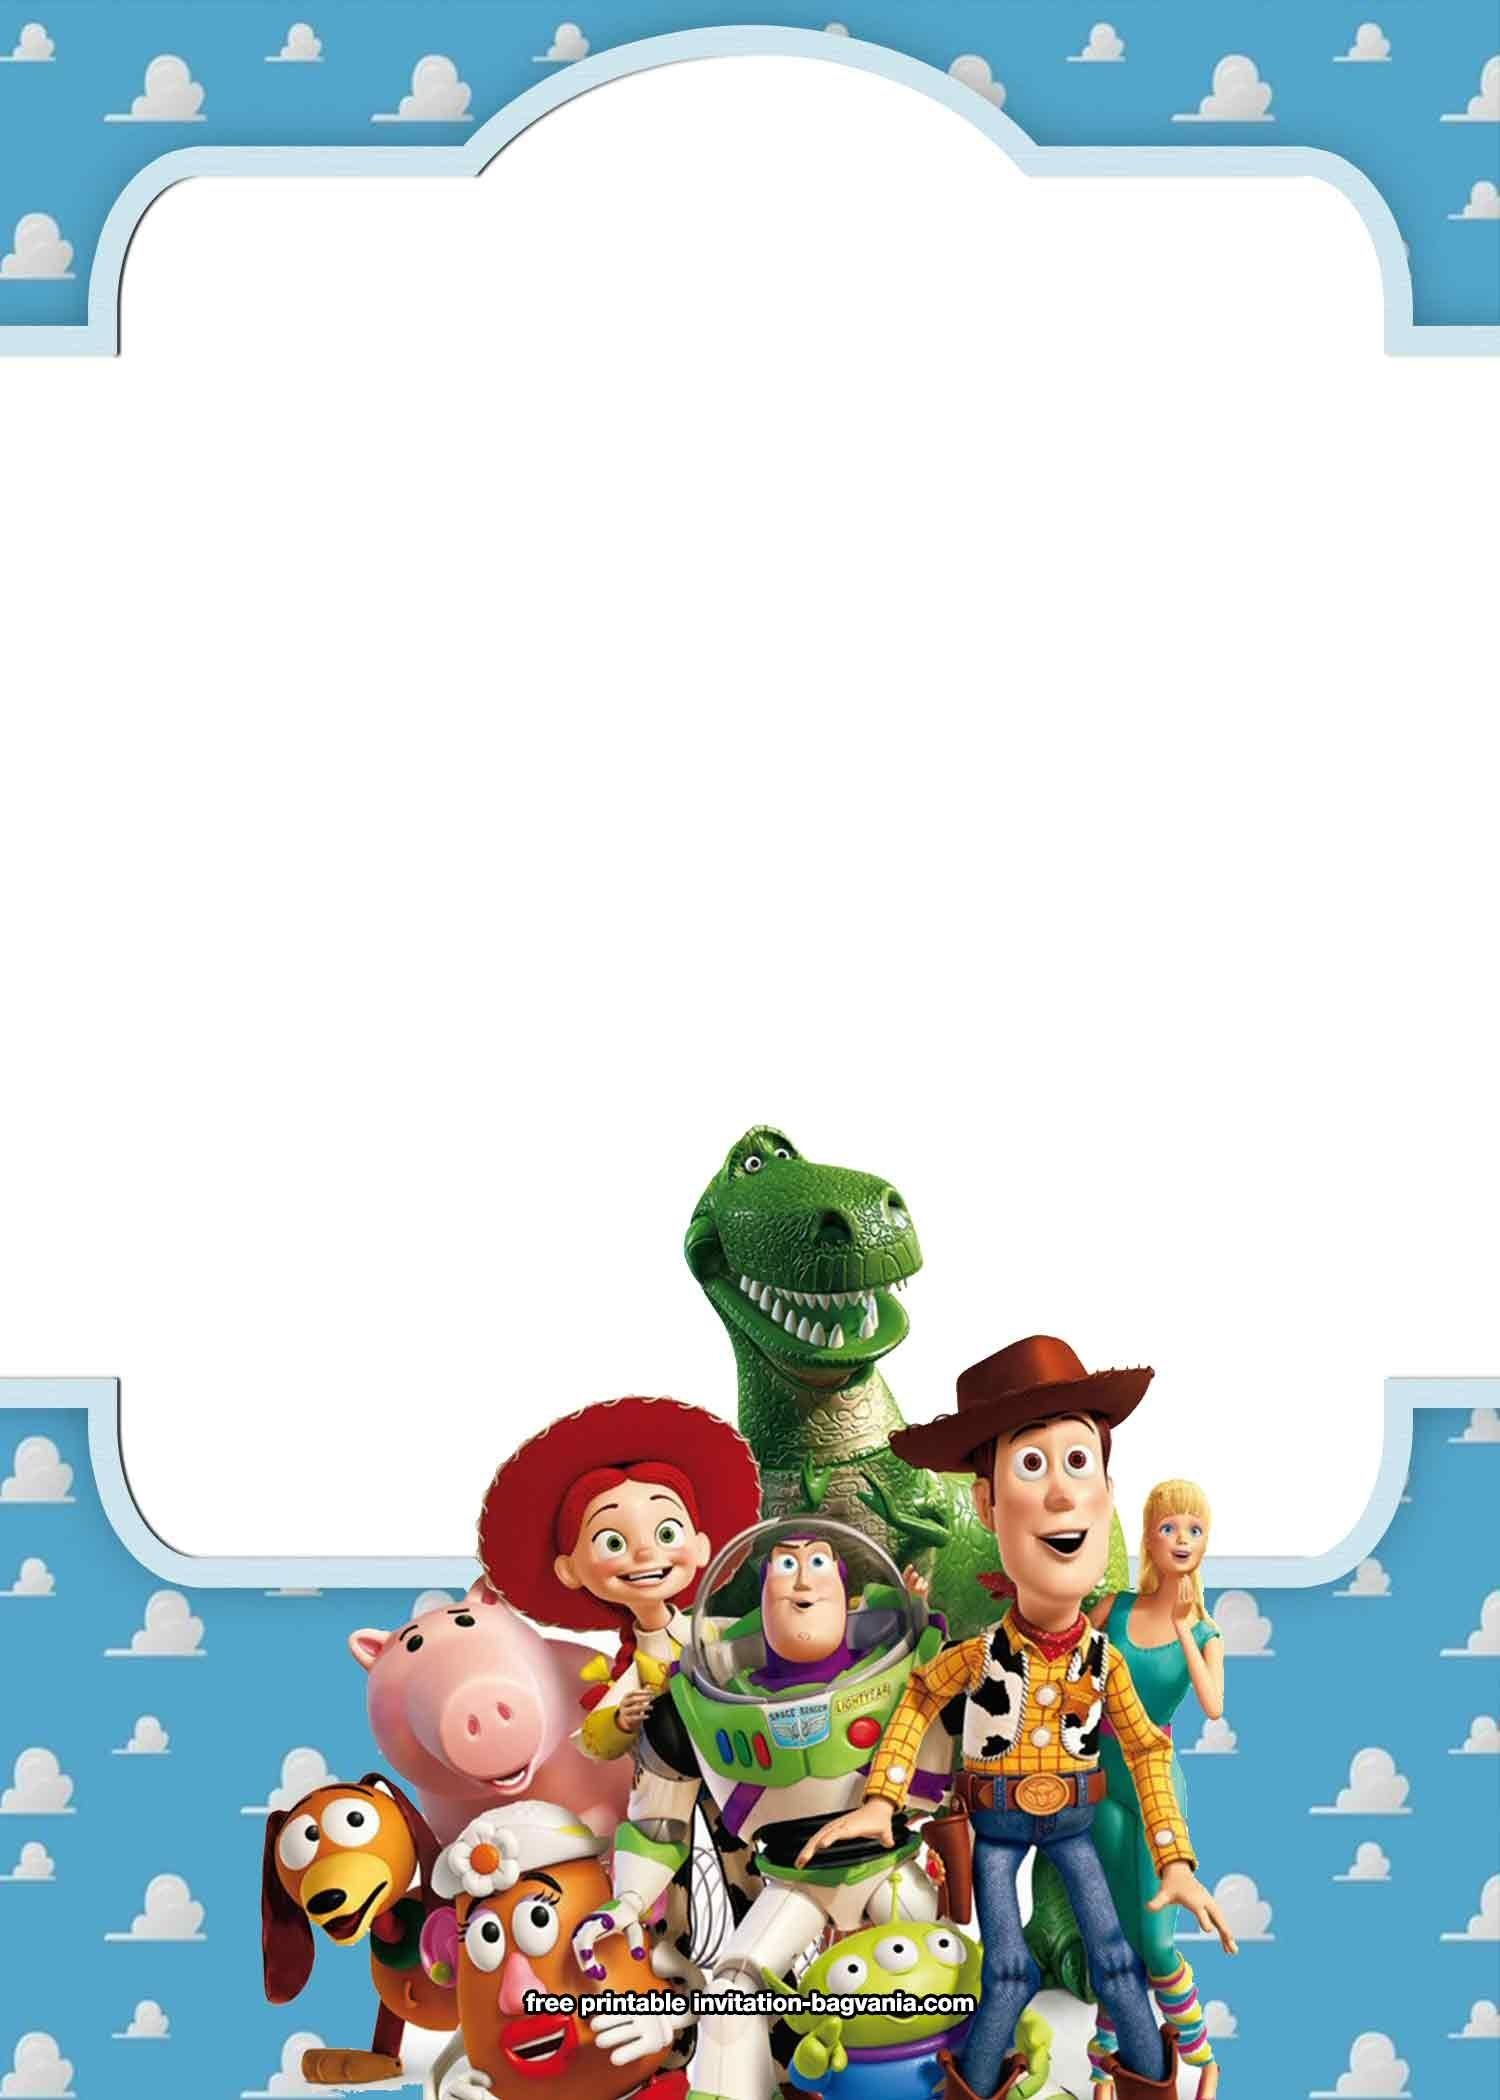 toy story 5 invitation template free Nice FREE Toy Story 5